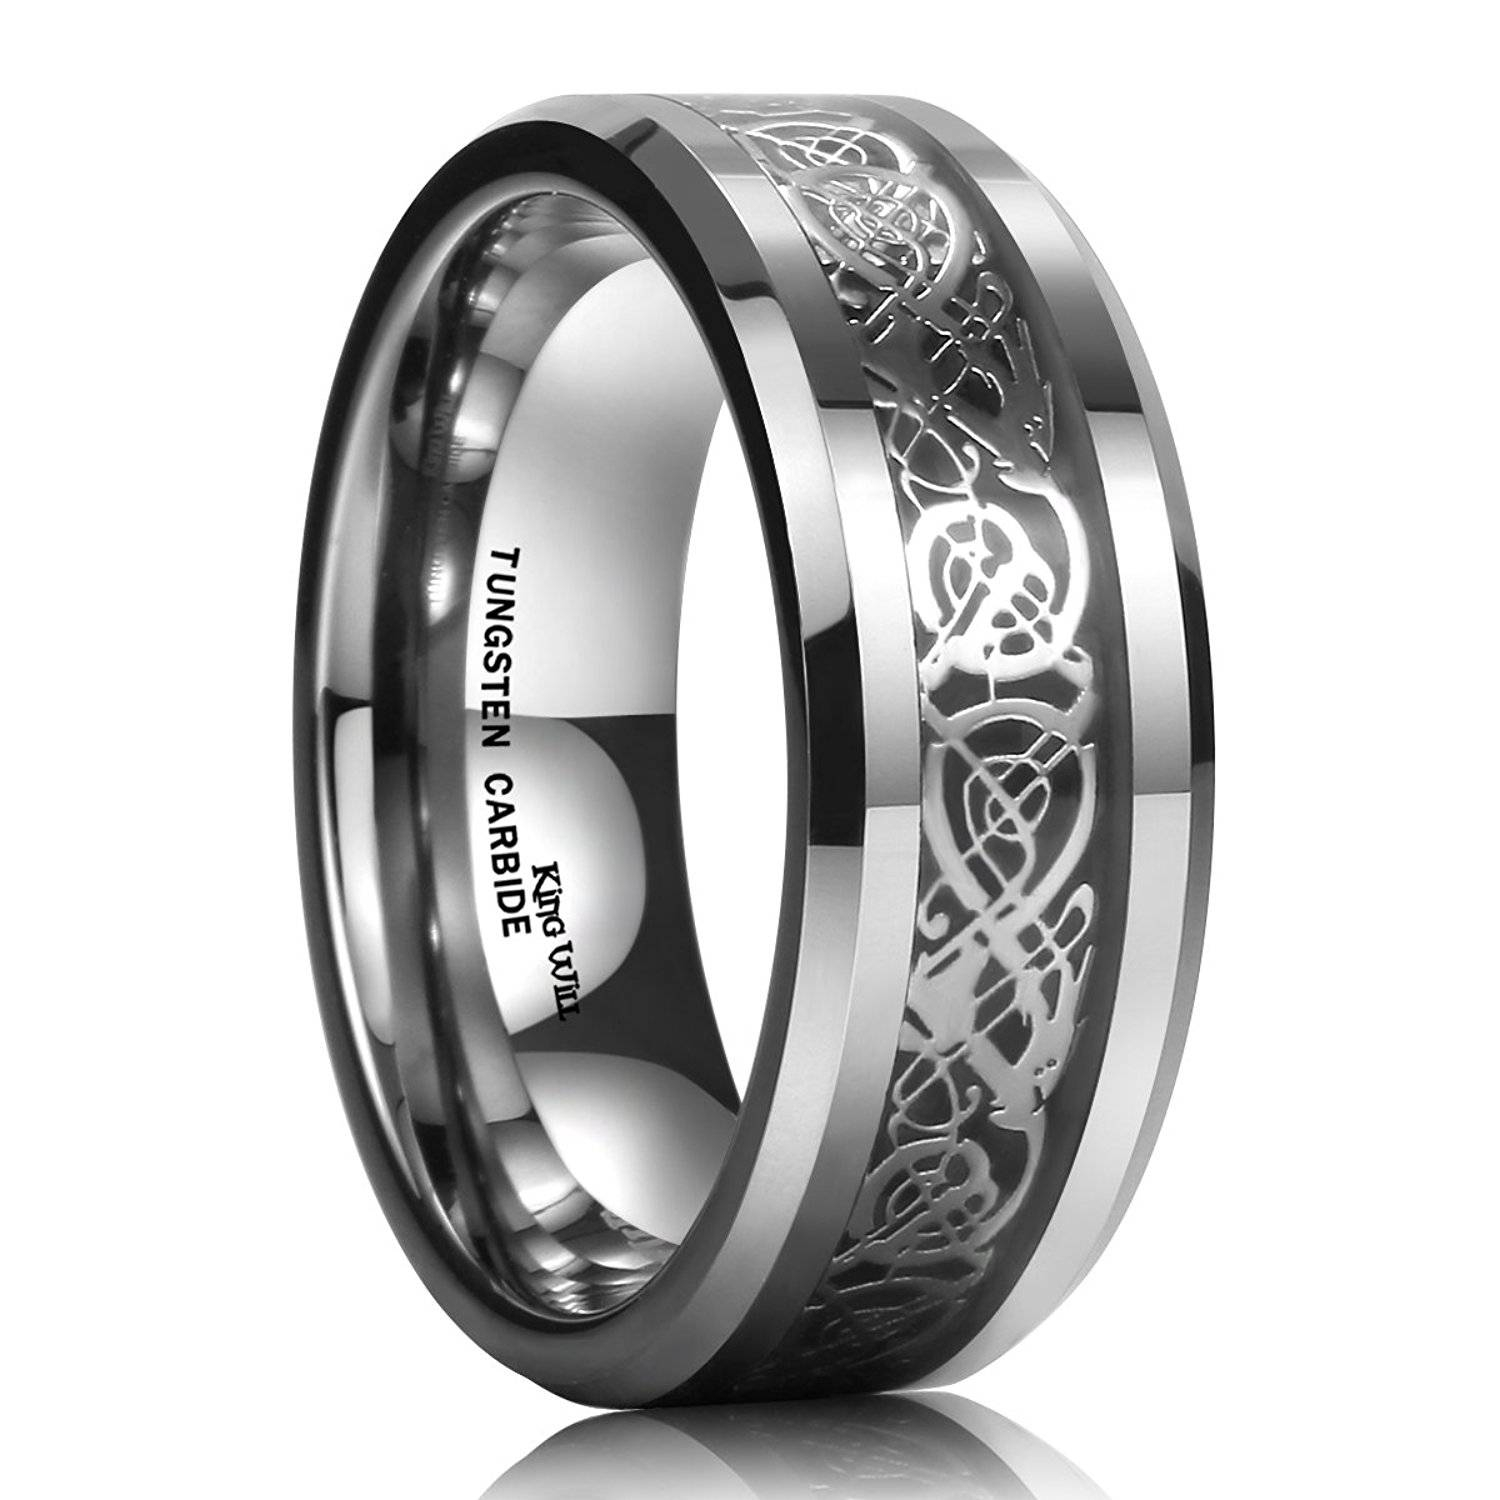 Ring Mens Wedding Rings Black Diamonds Qvc Wedding Rings Wedding With Regard To Qvc Mens Wedding Bands (View 9 of 15)